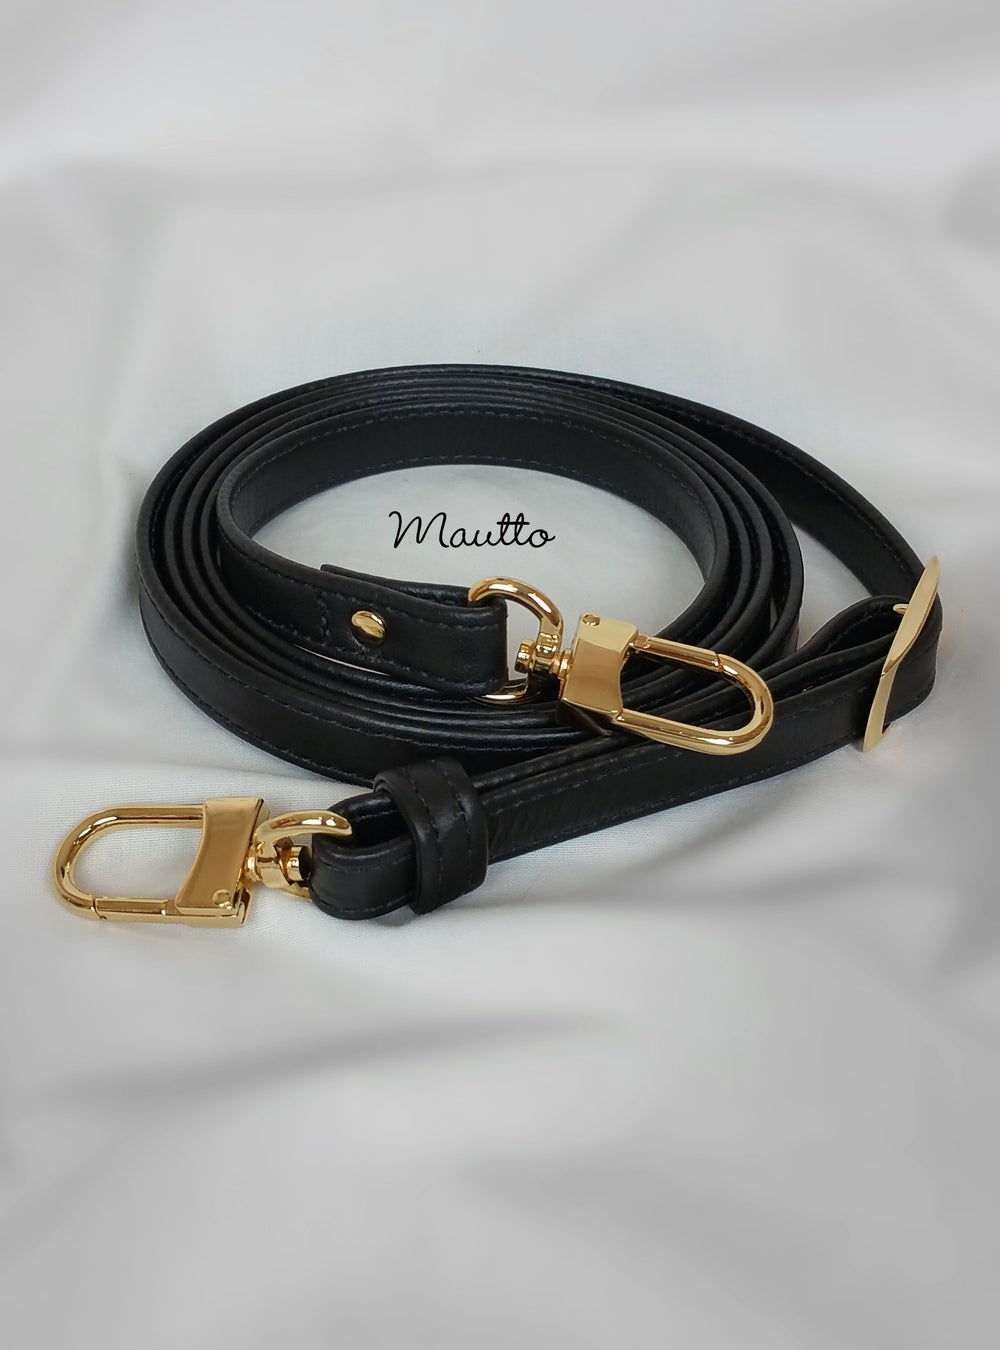 "Image of Black Leather Strap for Louis Vuitton Pochette/Alma/Eva/etc - .5"" Wide - Fixed or Adjustable Lengths"